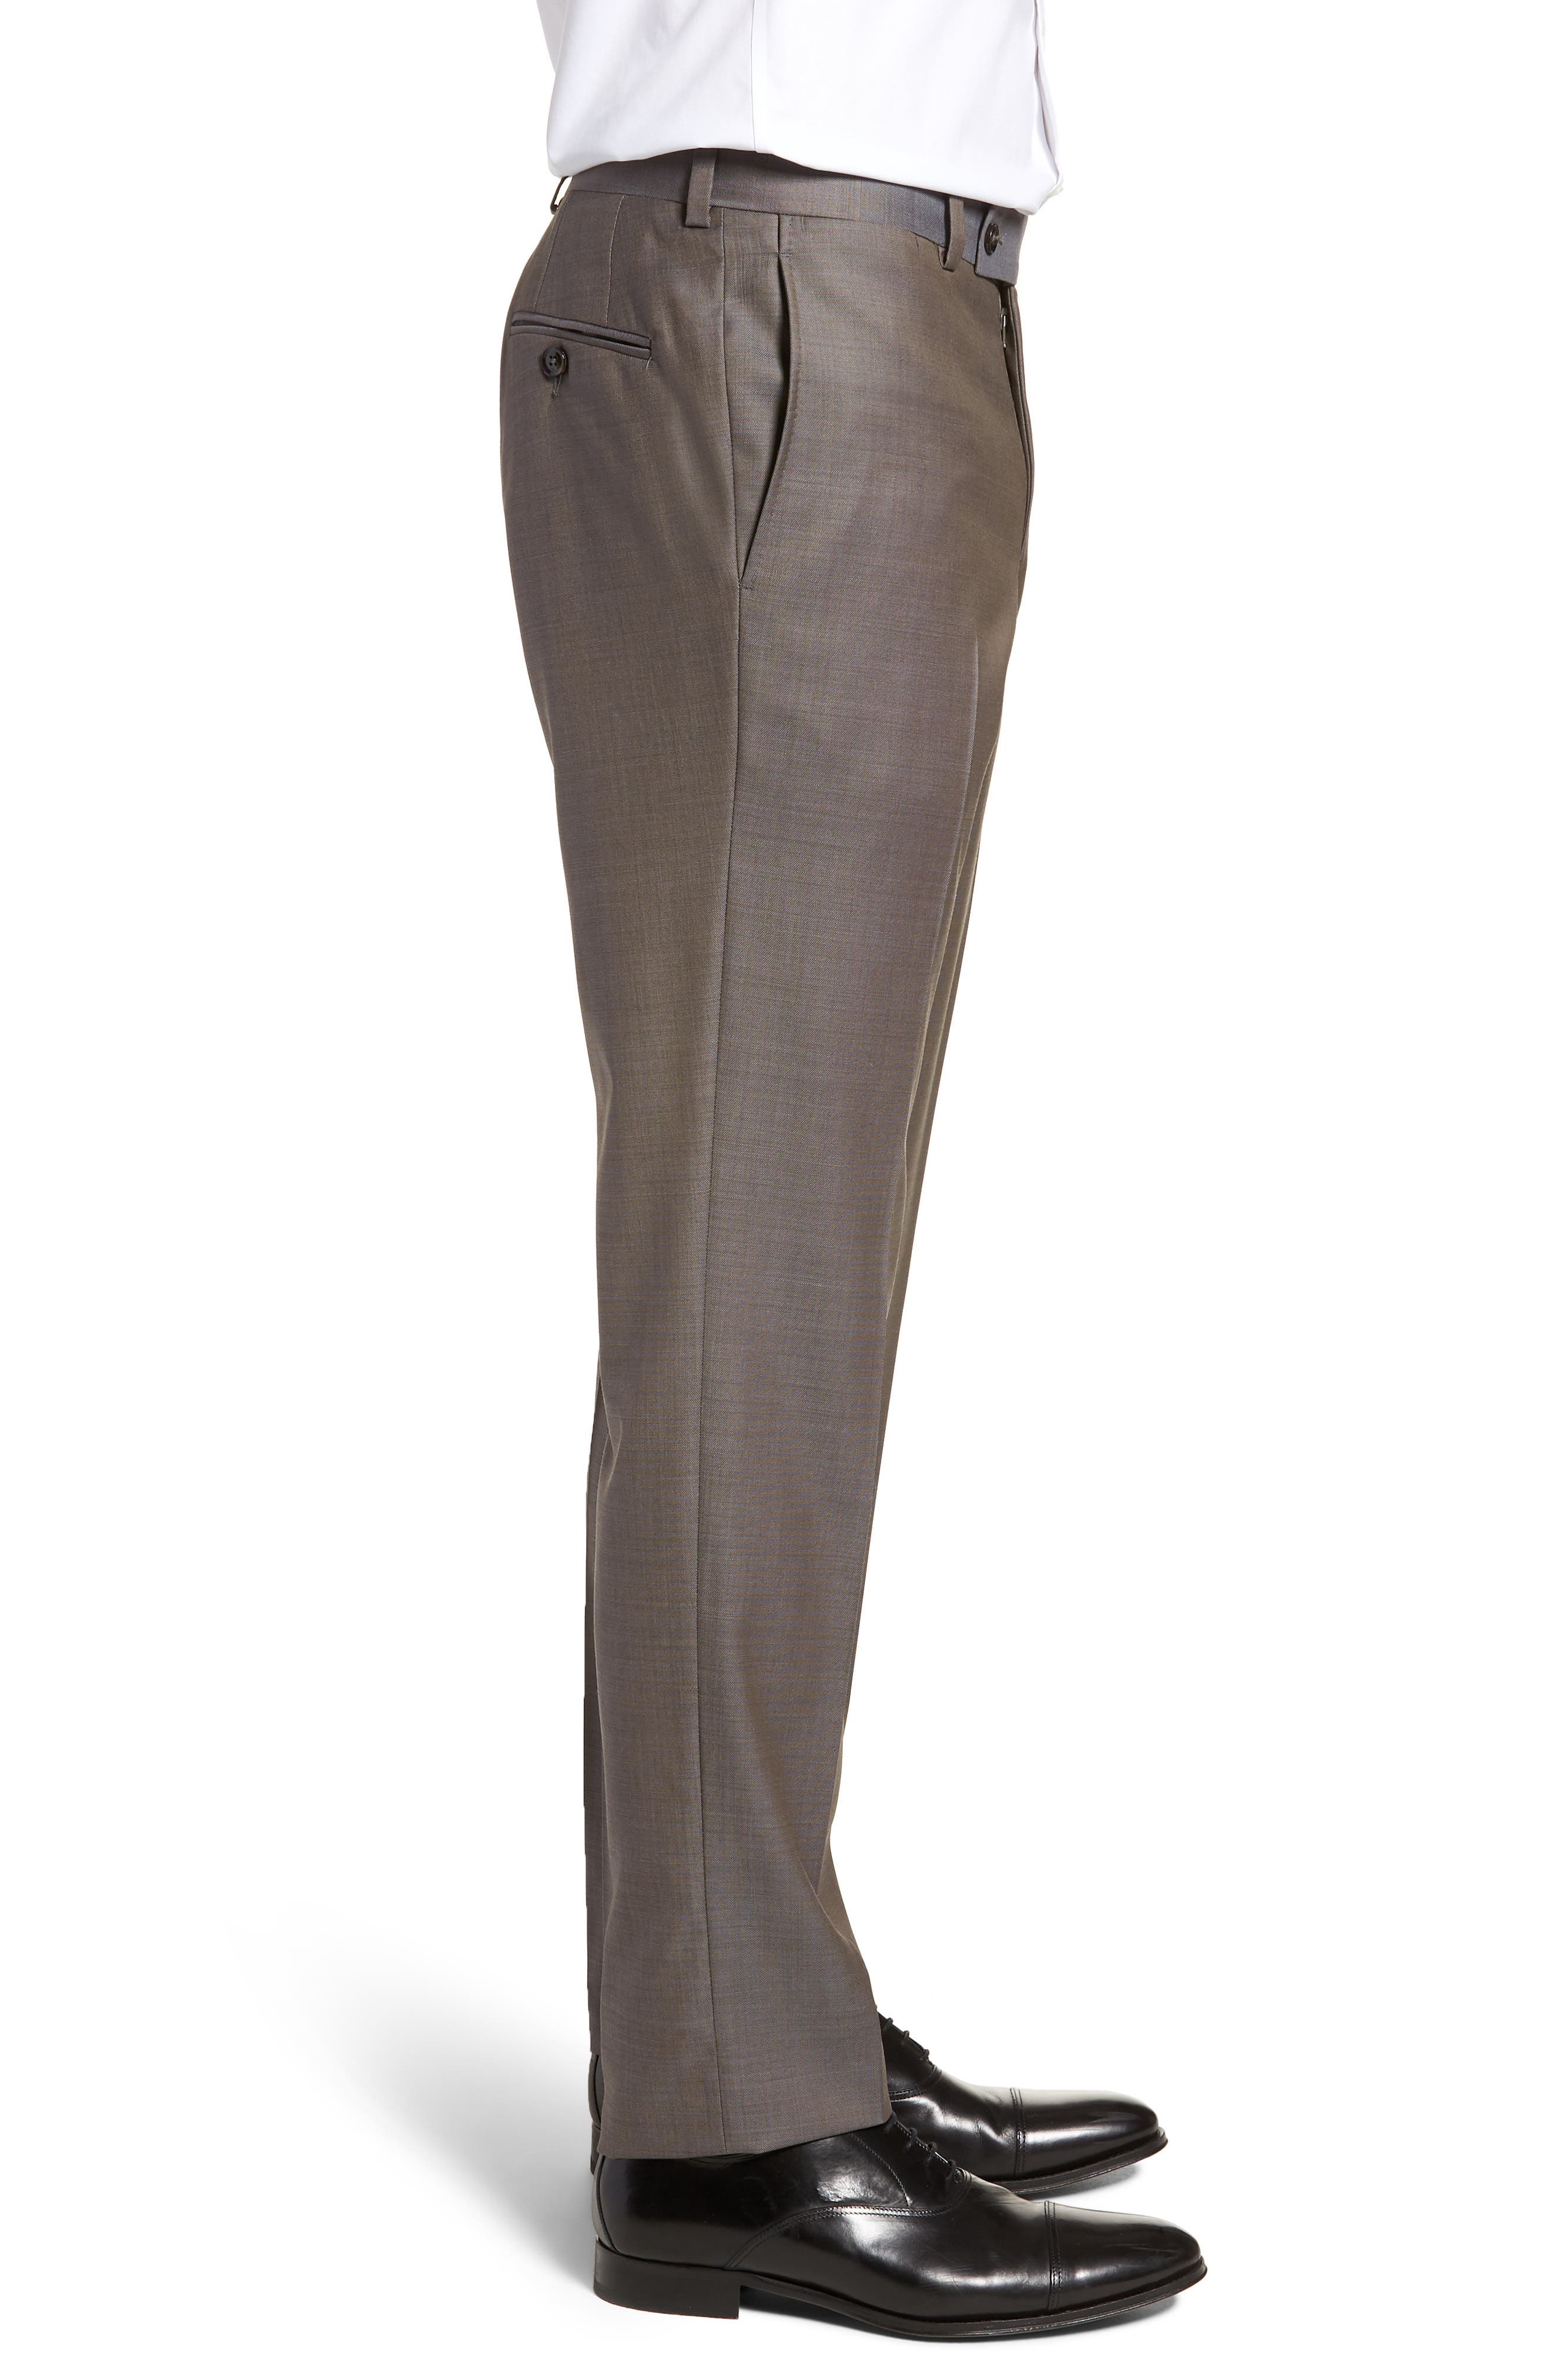 TED BAKER LONDON, Jefferson Flat Front Wool Trousers, Alternate thumbnail 3, color, MID GREY